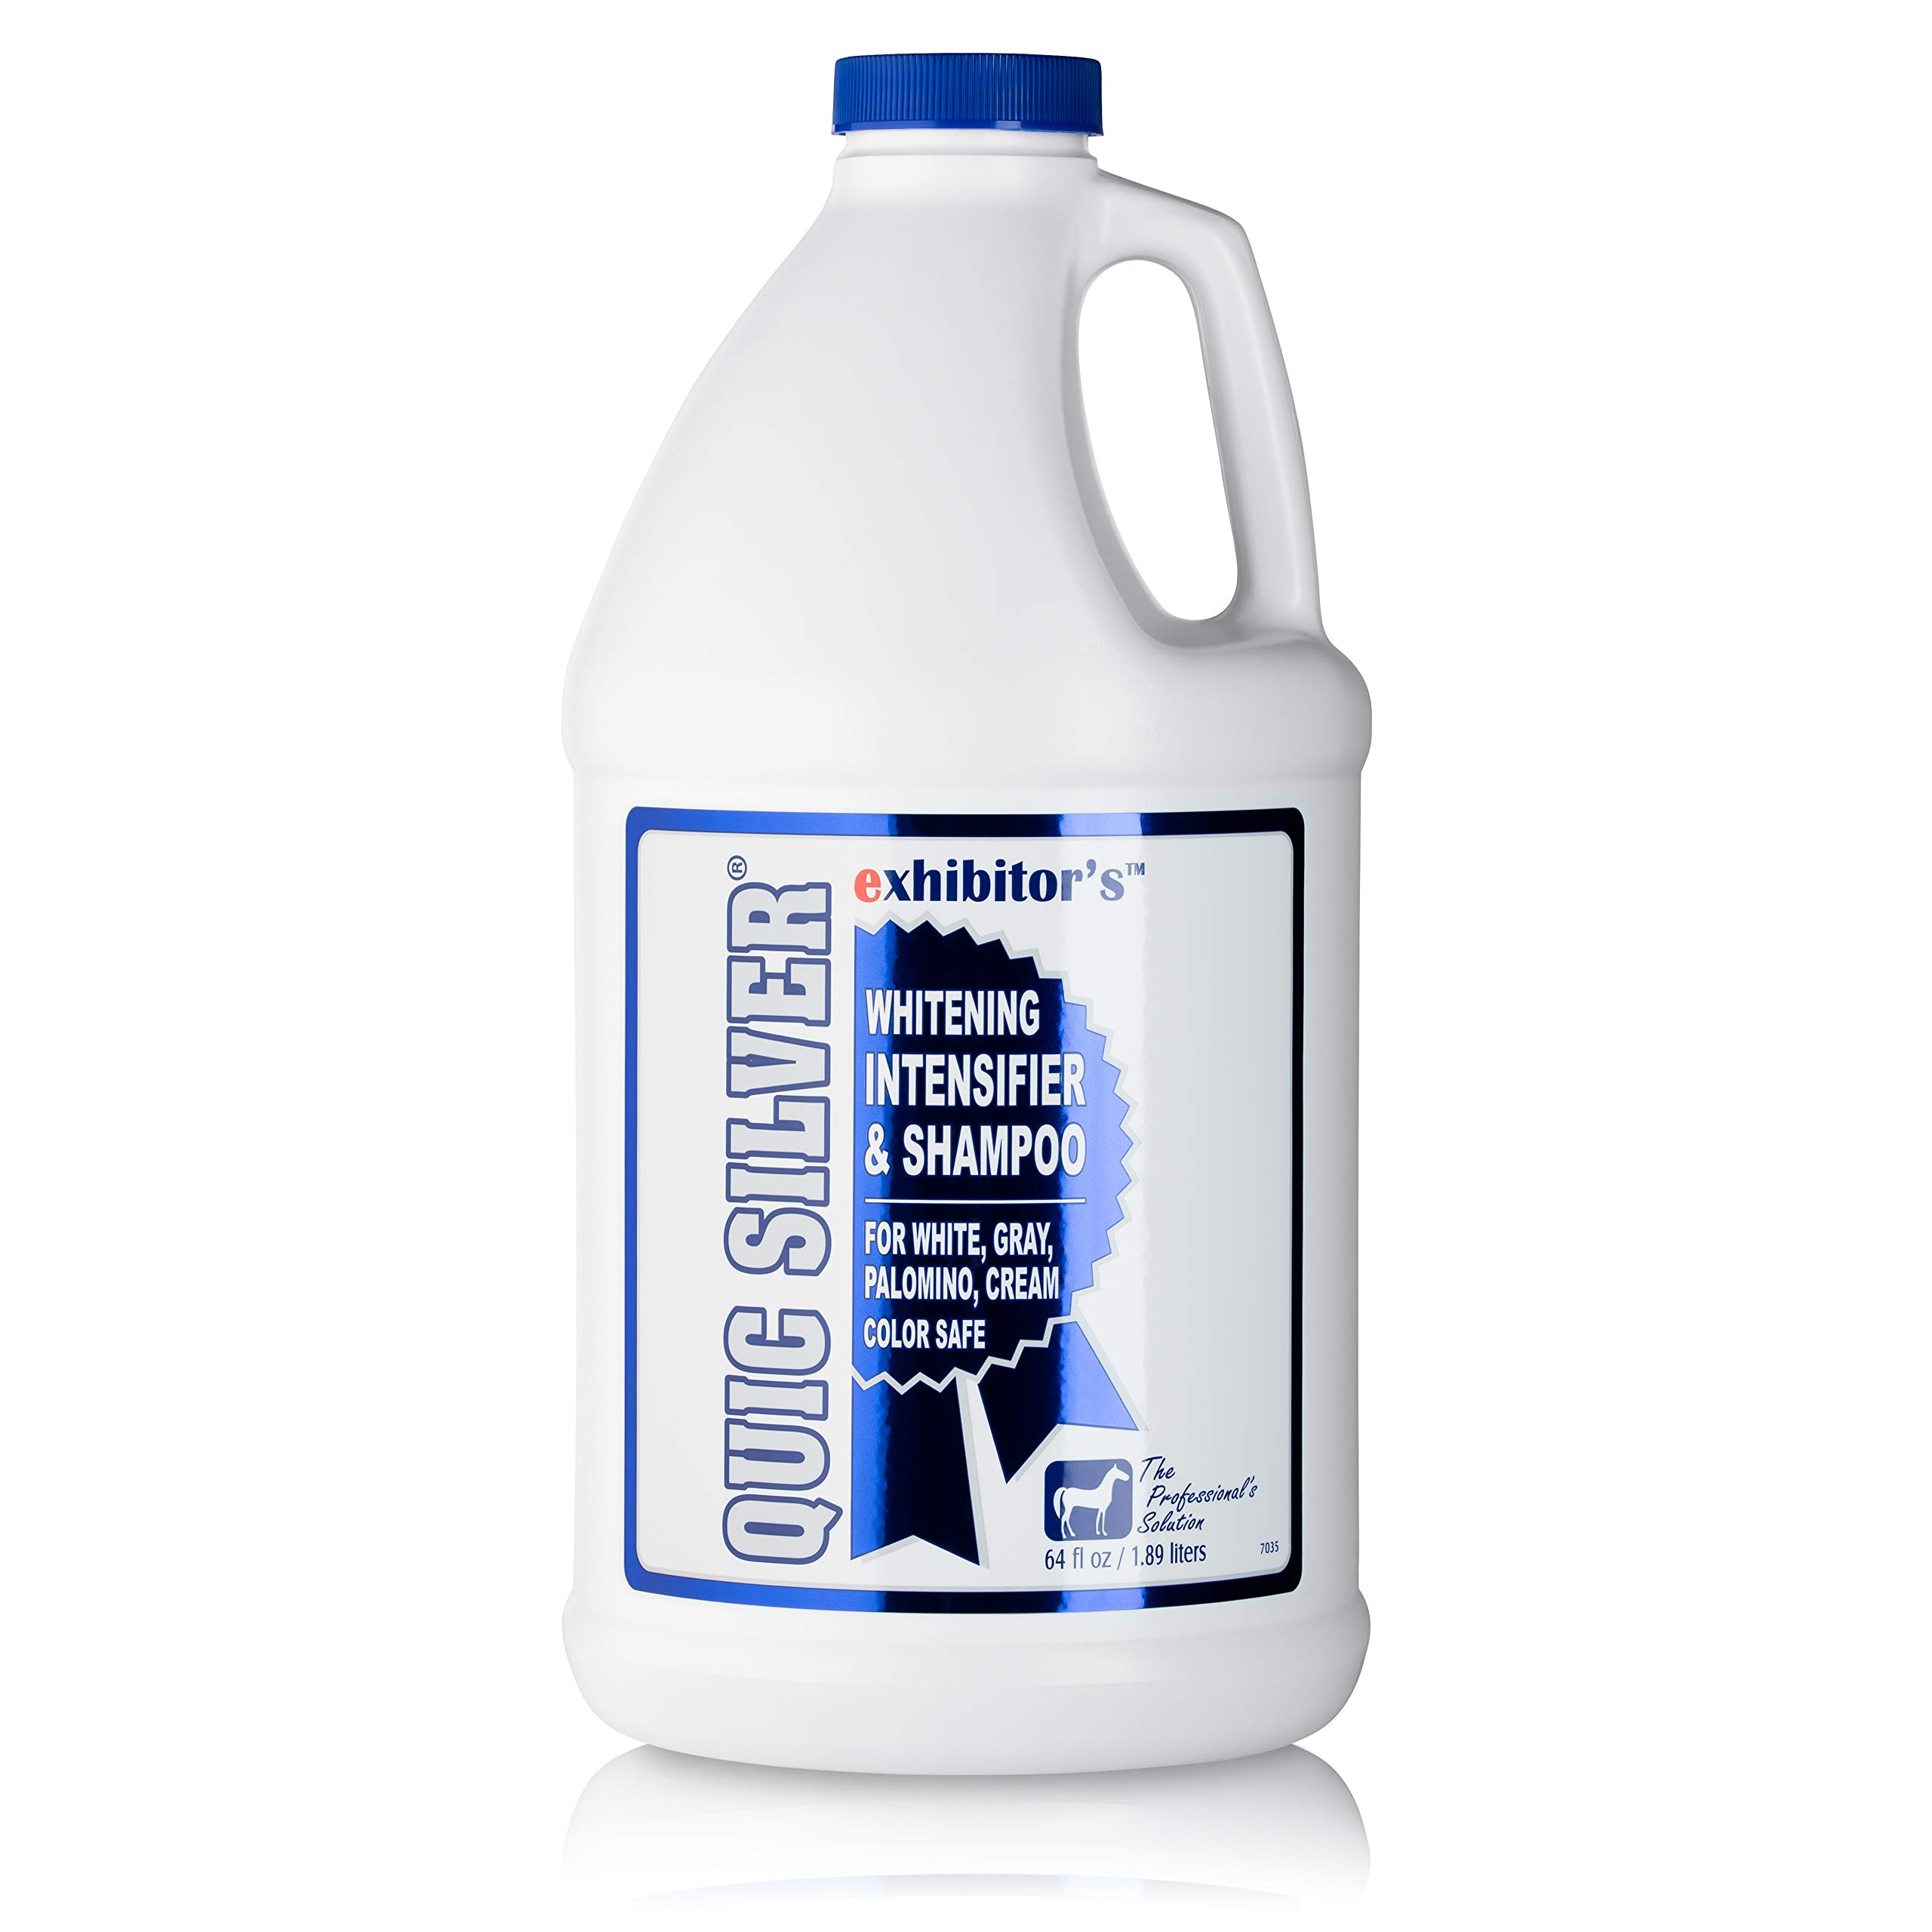 exhibitor's Quic Silver Color Intensifying Horse Shampoo 64 Ounce